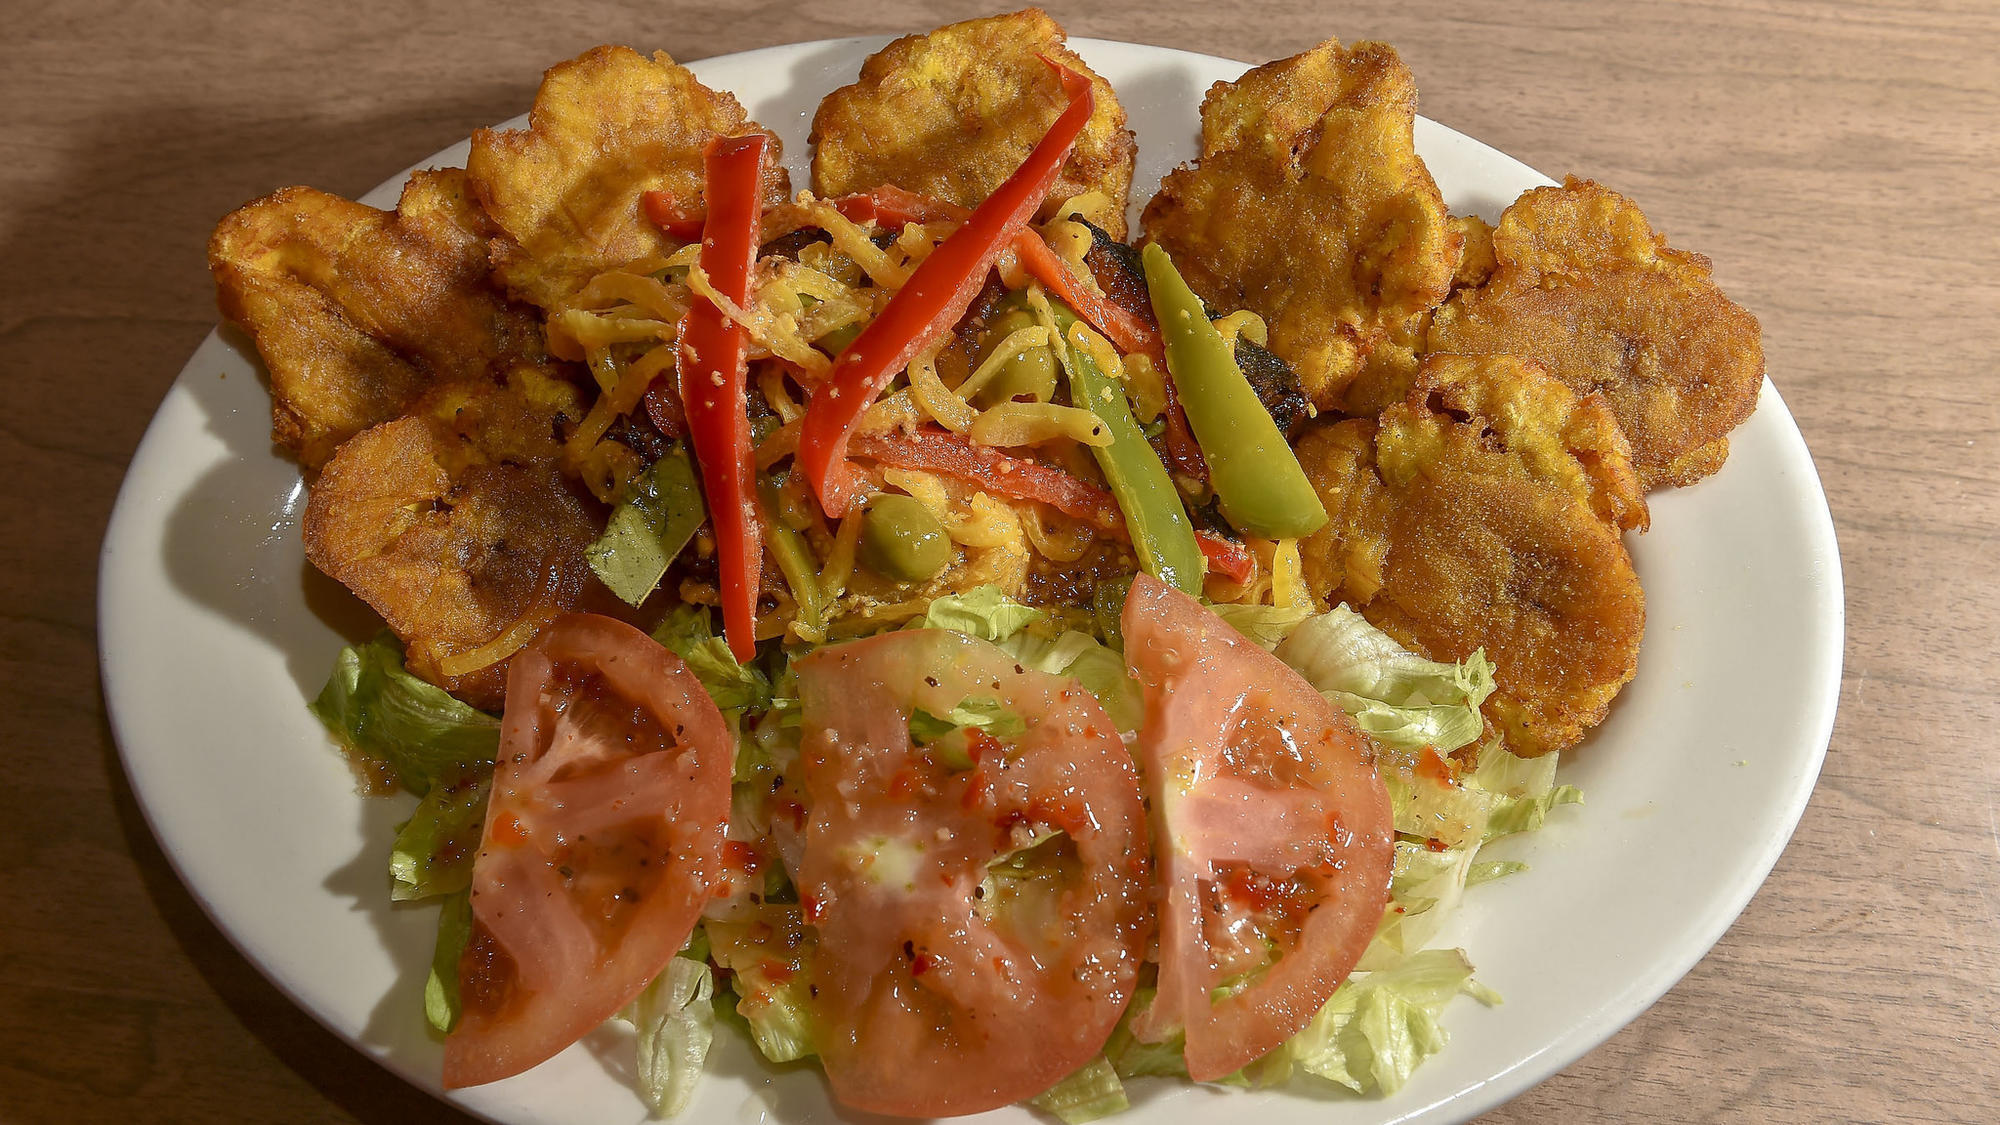 Restaurant review: South Bethlehem's Milagro's serves seriously good Puerto Rican soul food